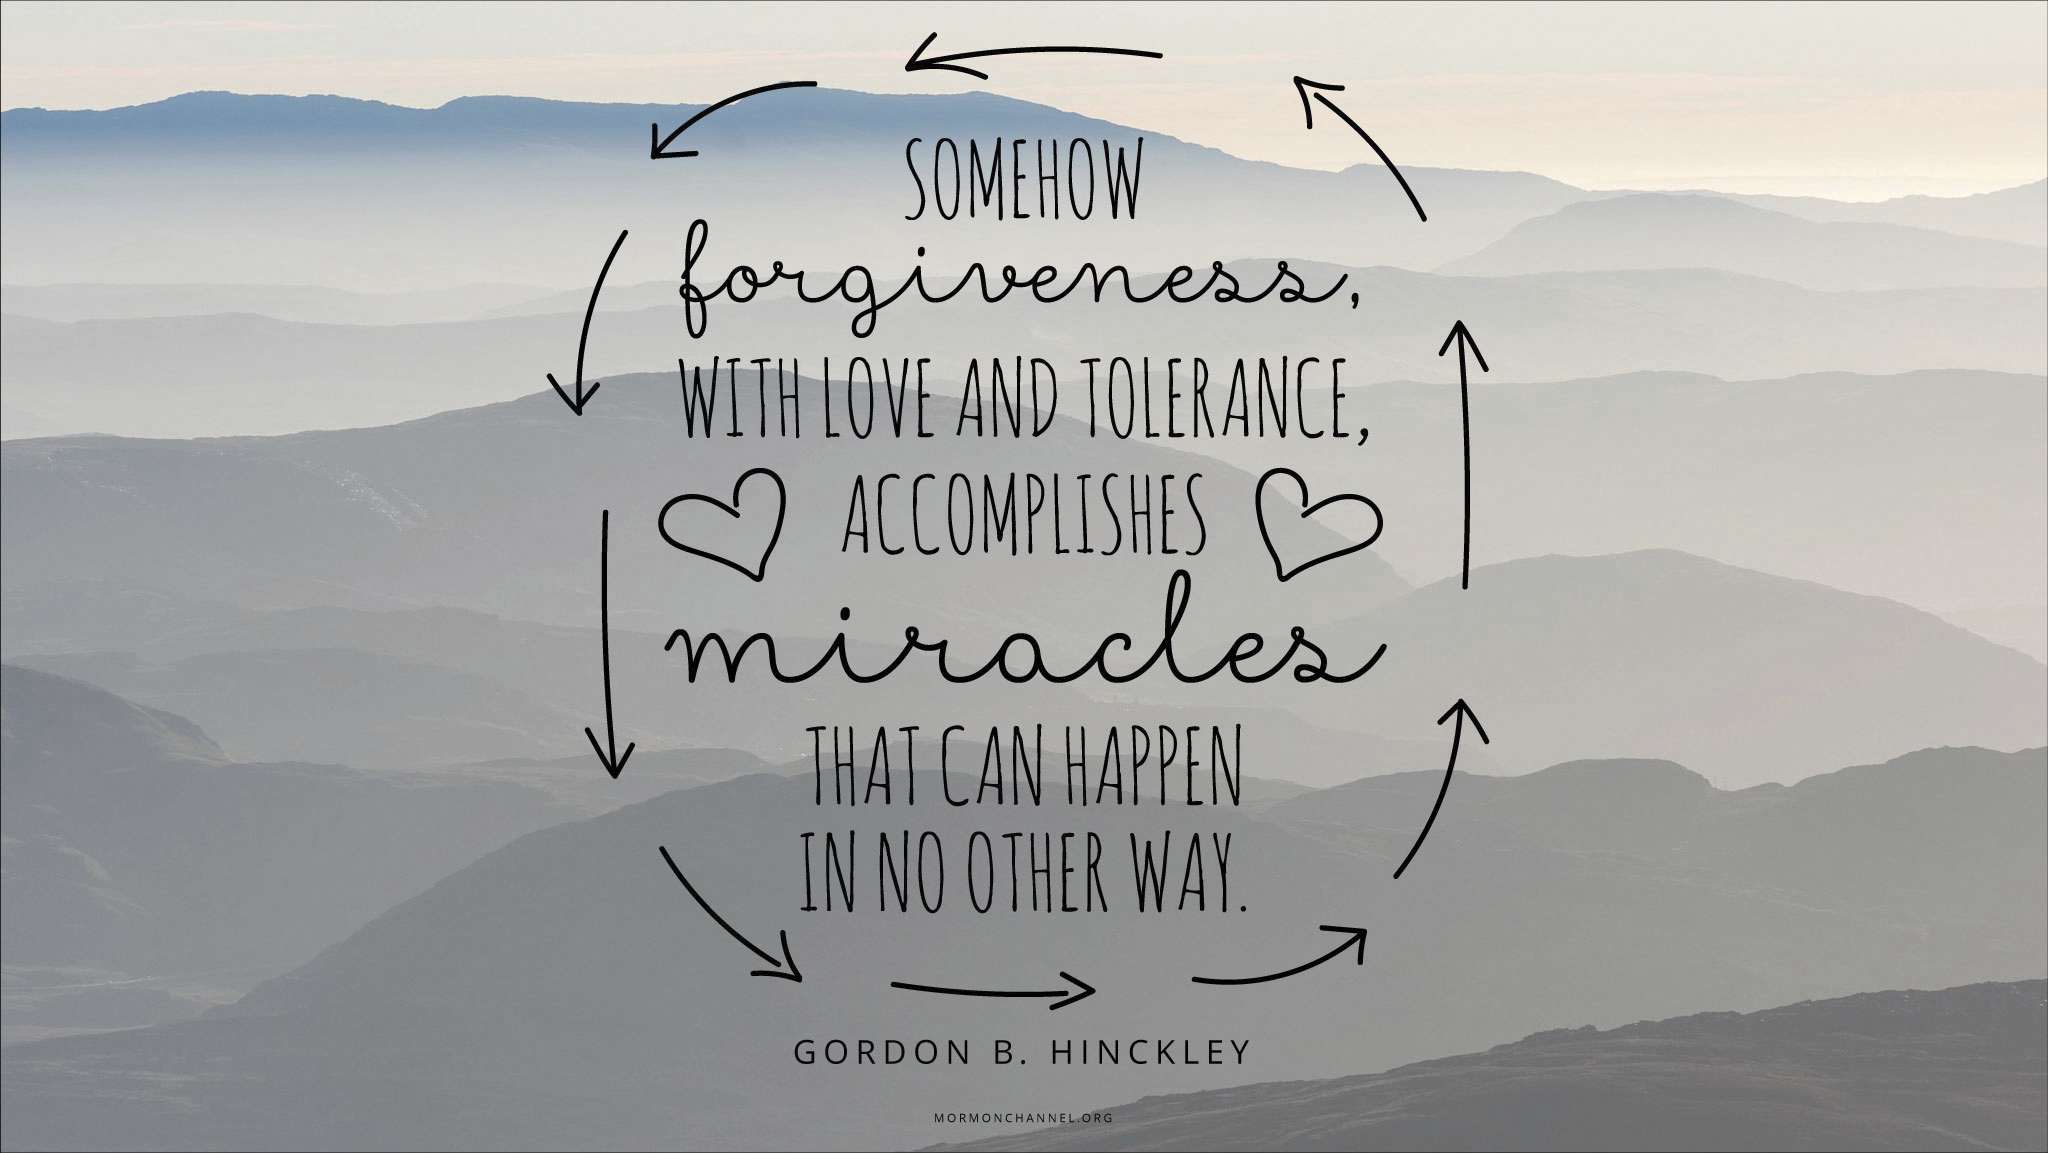 """""""Somehow forgiveness, with love and tolerance, accomplishes miracles that can happen in no other way.""""—President Gordon B. Hinckley, """"Forgiveness"""""""